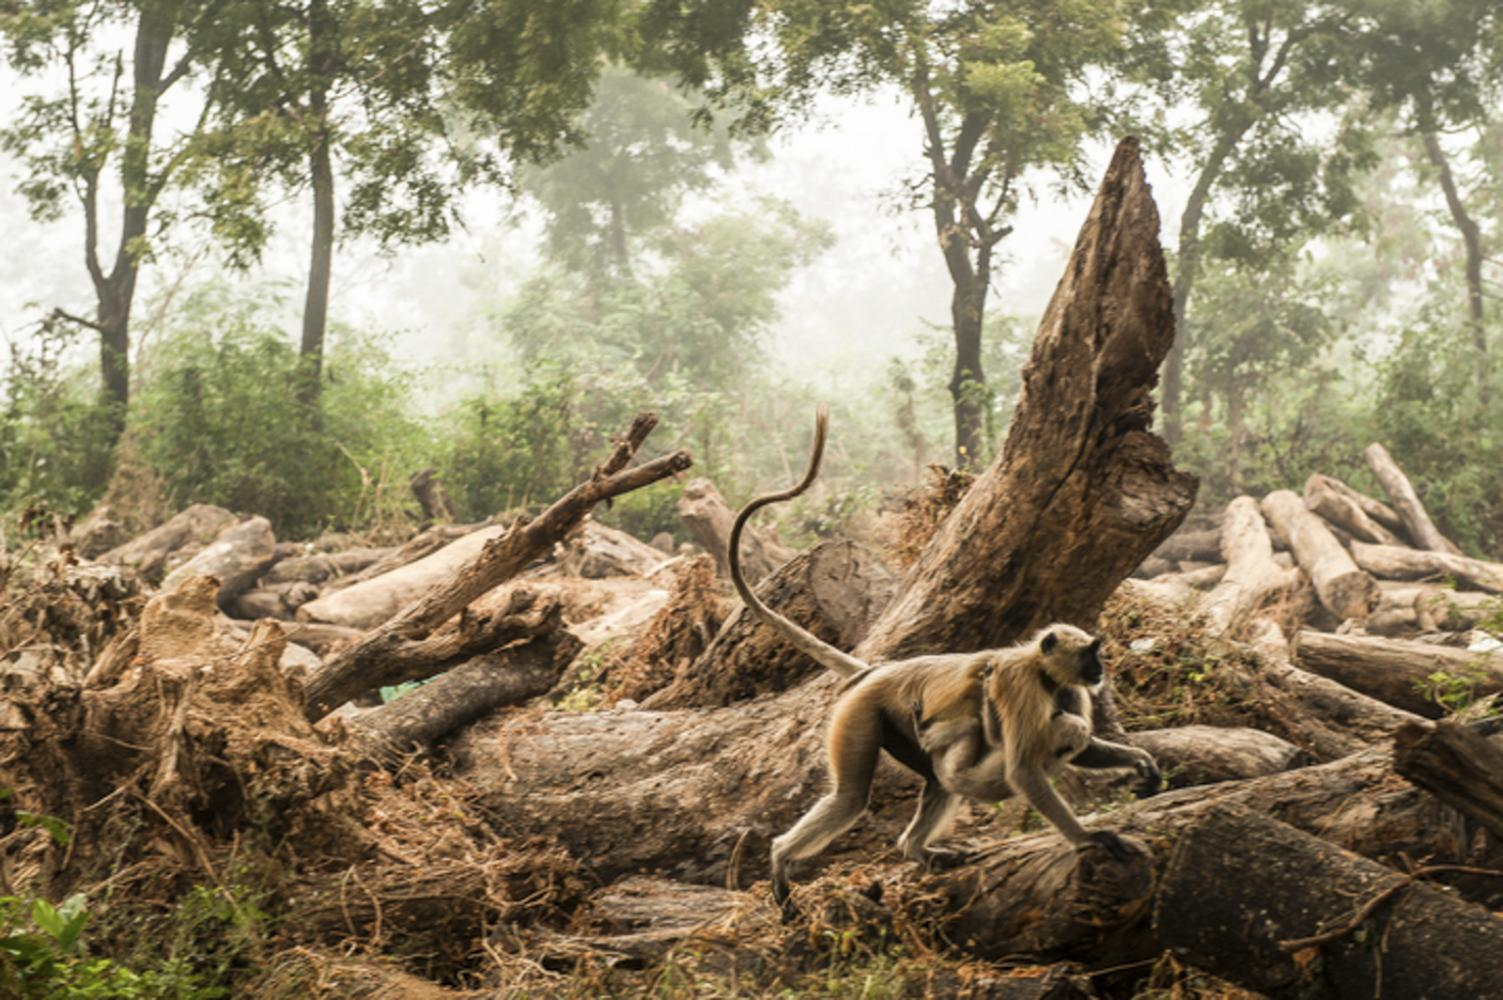 A mother monkey runs with her baby in a Jungle near Chitrakoot, India.